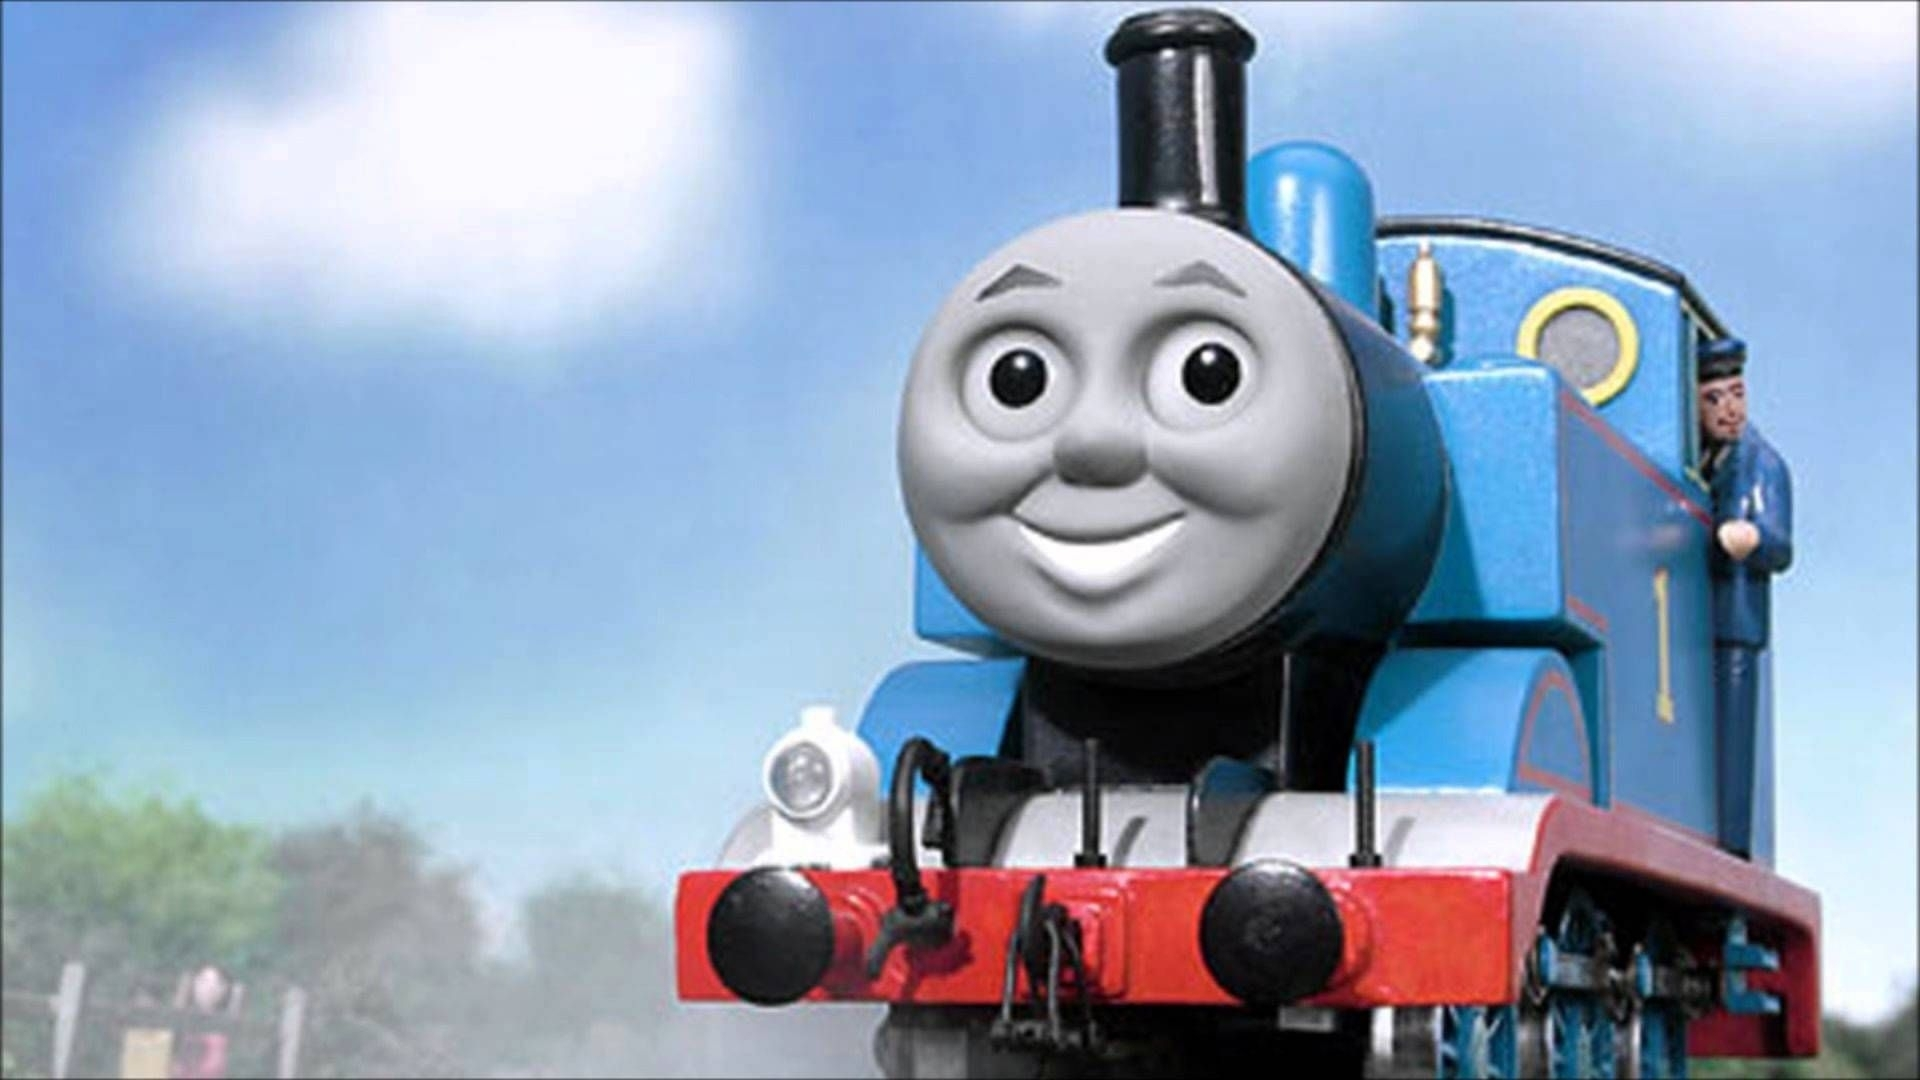 thomas the tank engine wallpapers crazy frankenstein | hd wallpapers